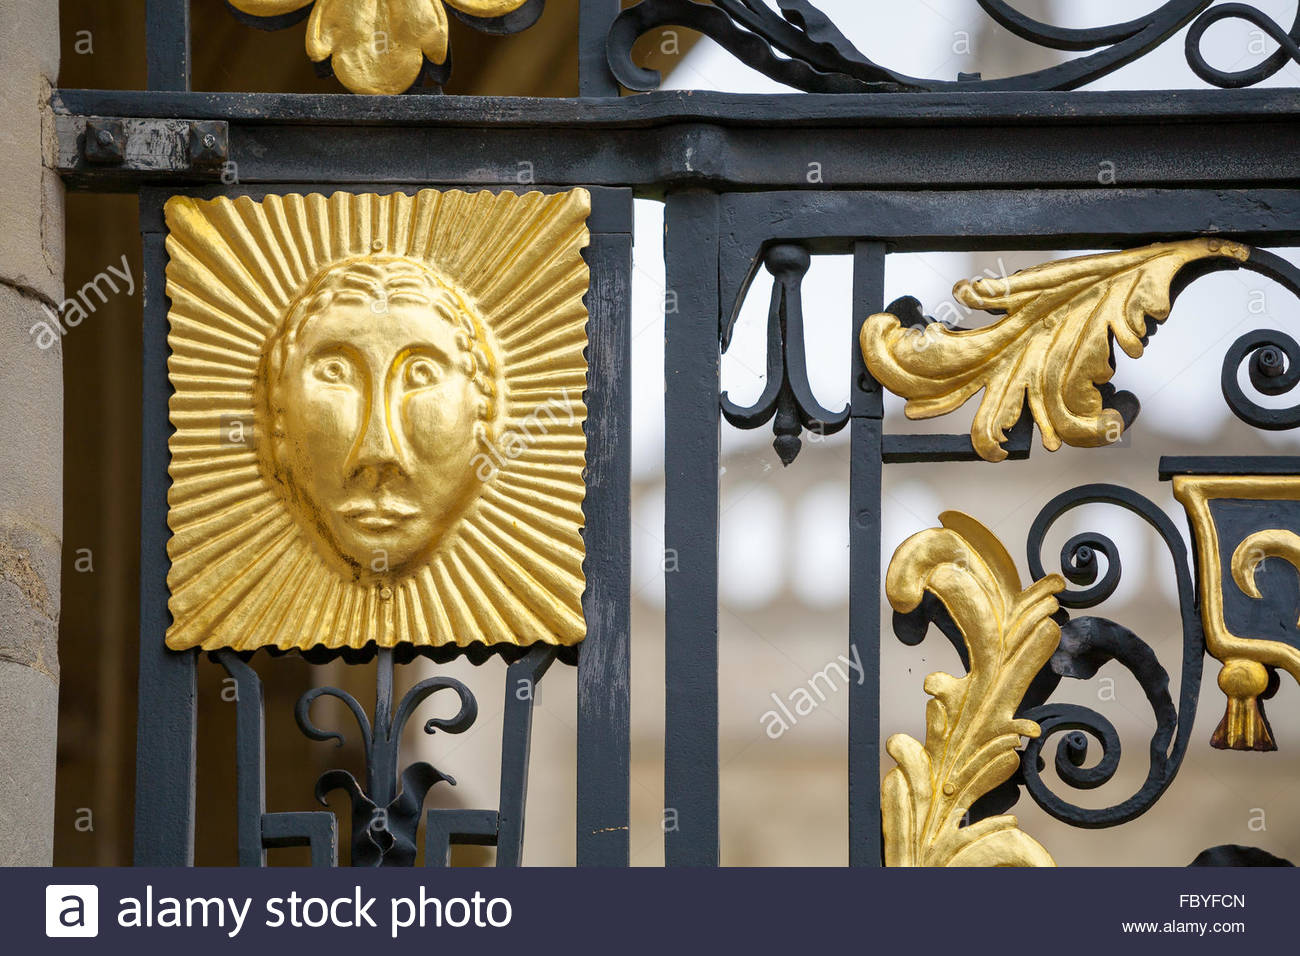 Gold And Black Gate Stock Photos & Gold And Black Gate Stock Images ...